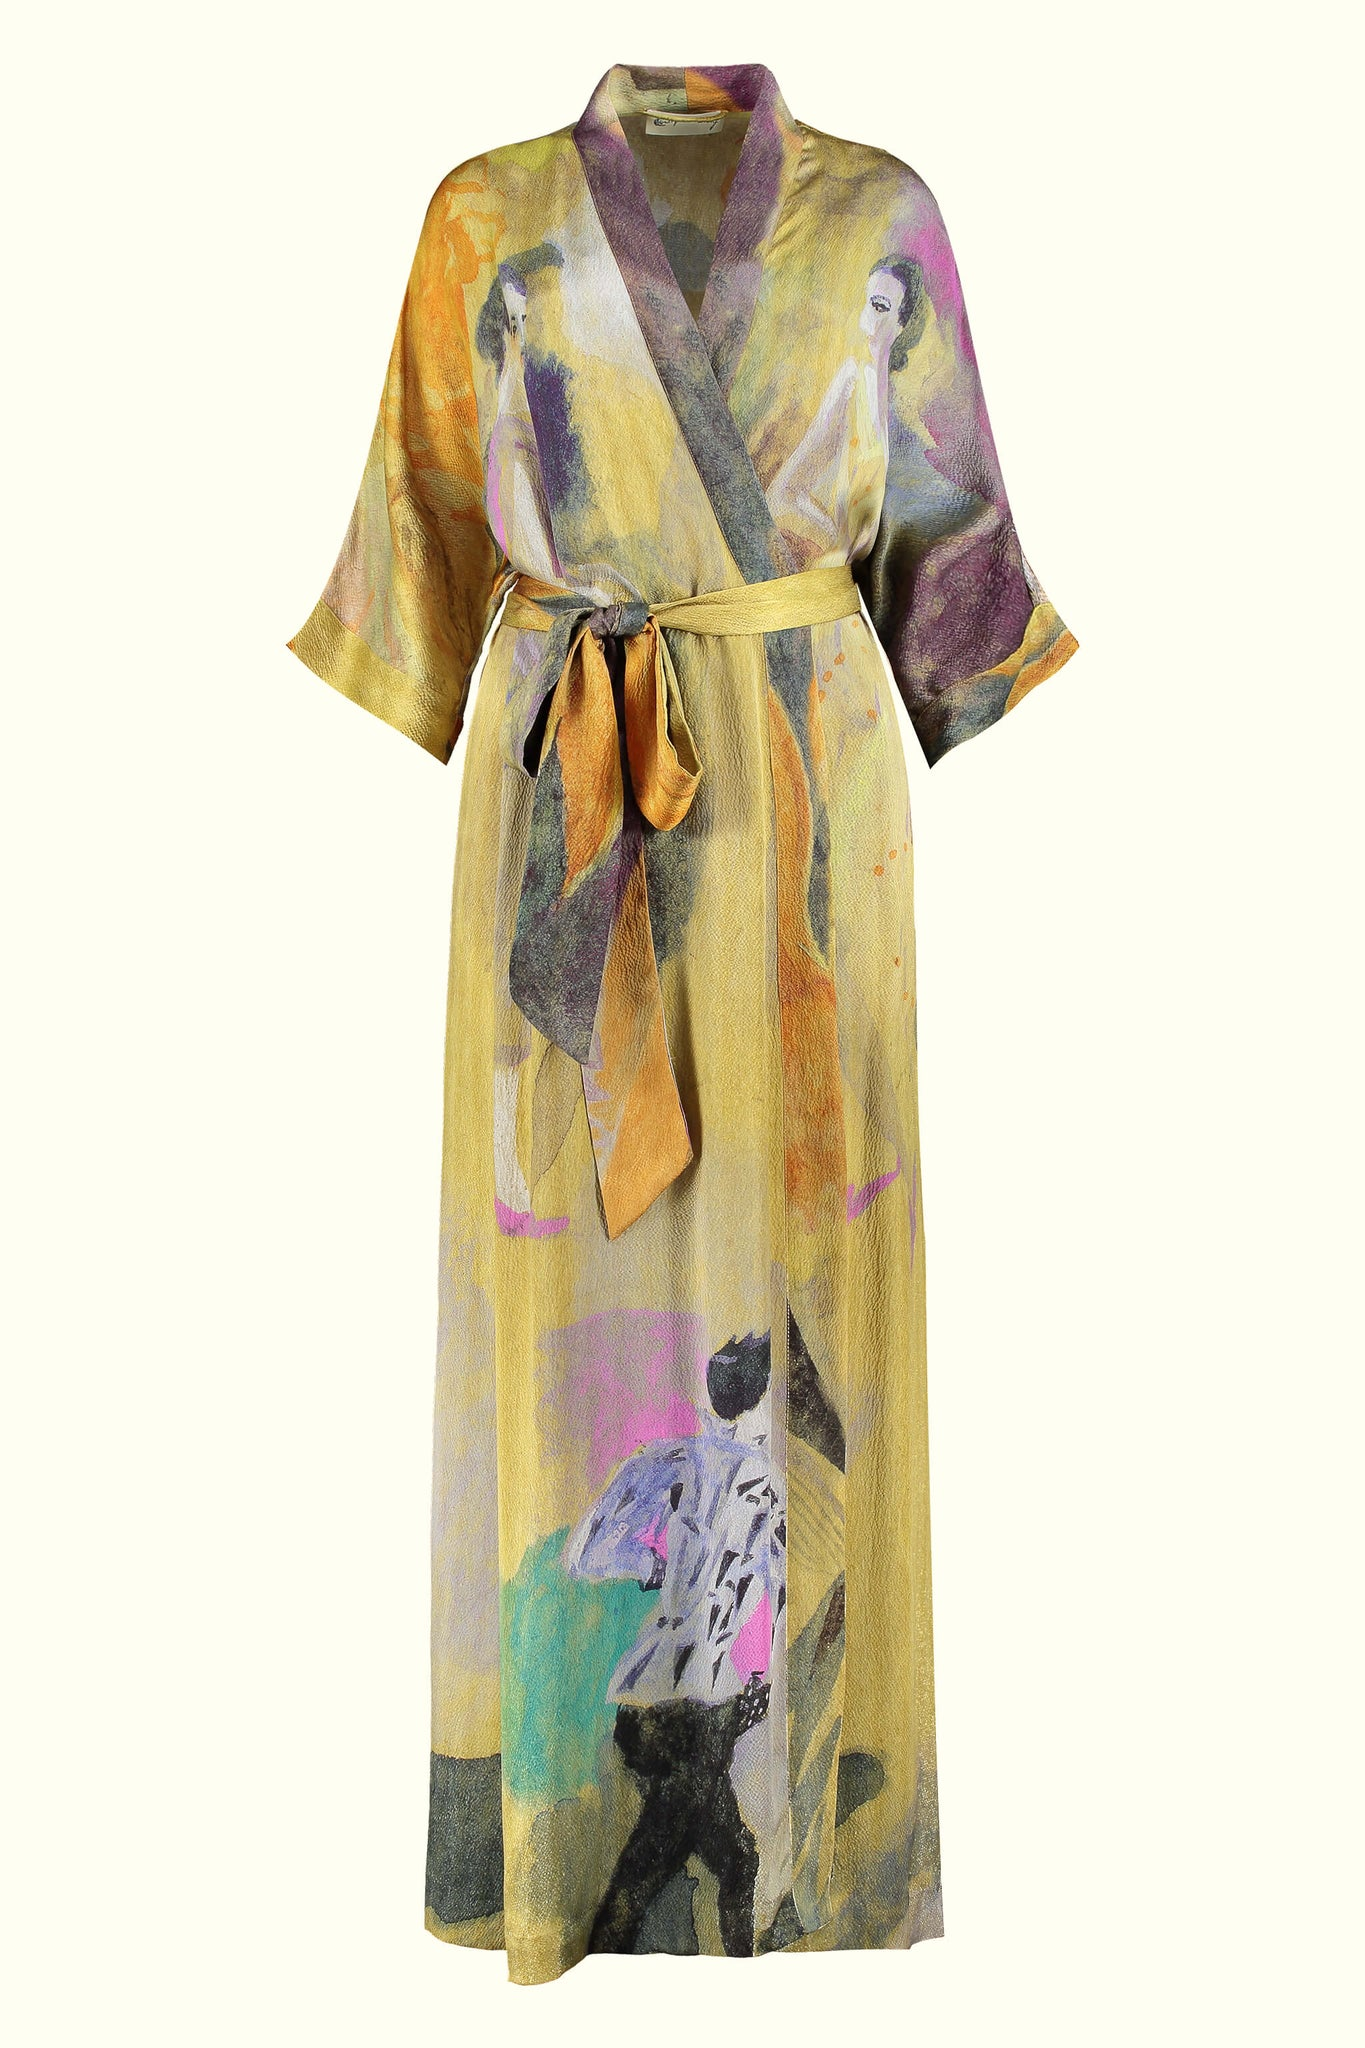 A luxury British silk robe by GVE in gold Conversation print design.